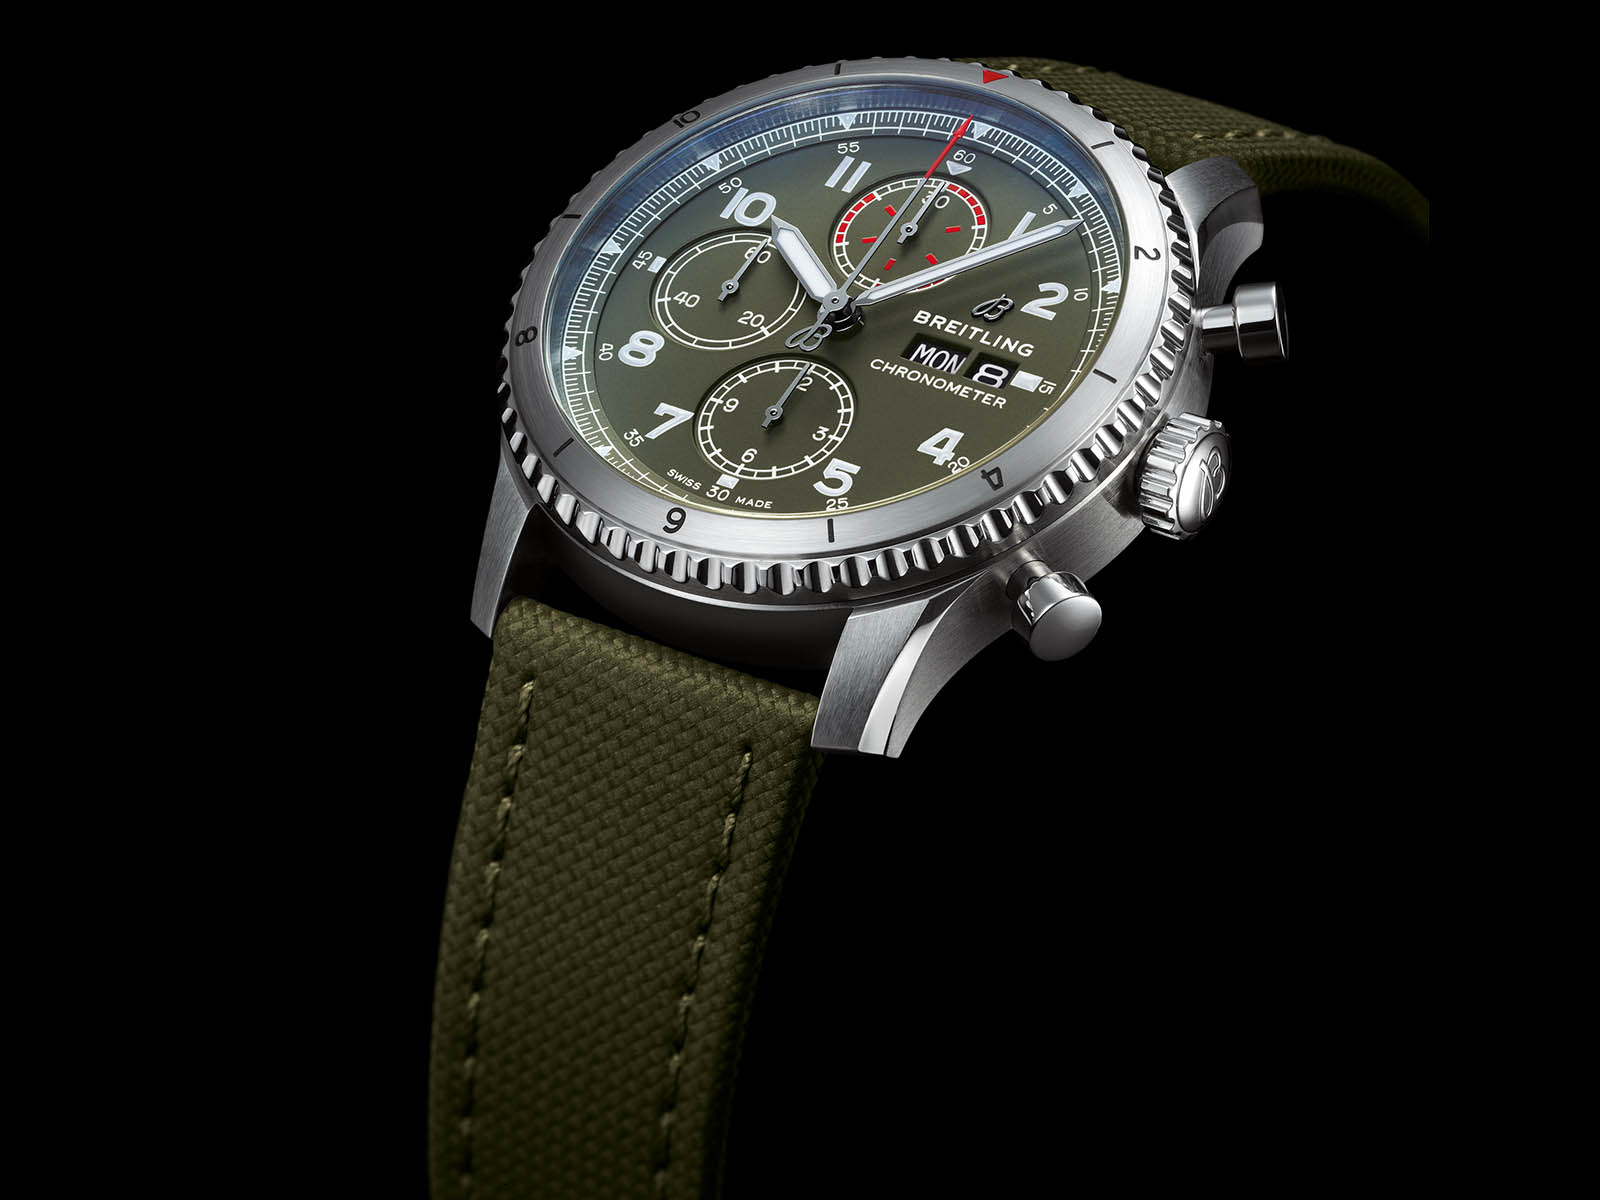 a13316-breitling-aviator-8-chronograph-43-curtiss-warhawk-2.jpg